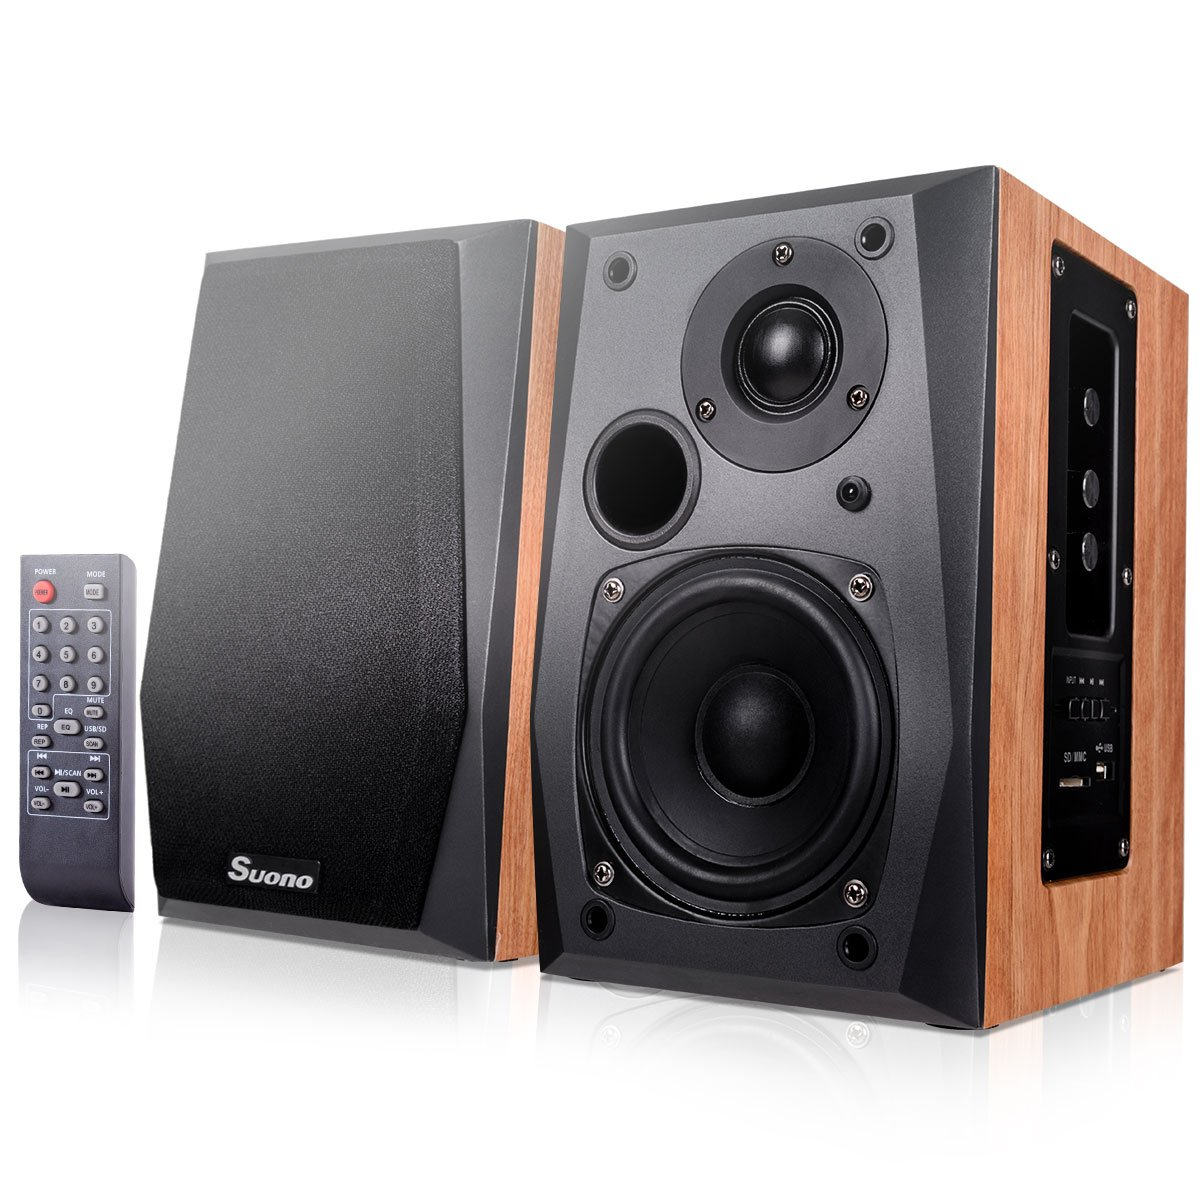 Costzon Powered Bluetooth Bookshelf Speakers, Active Studio Monitor Speaker With Tweeter, Woofer, USB, SD/MMC Card Slot, Remote Control (Active & Passive Speakers Set)